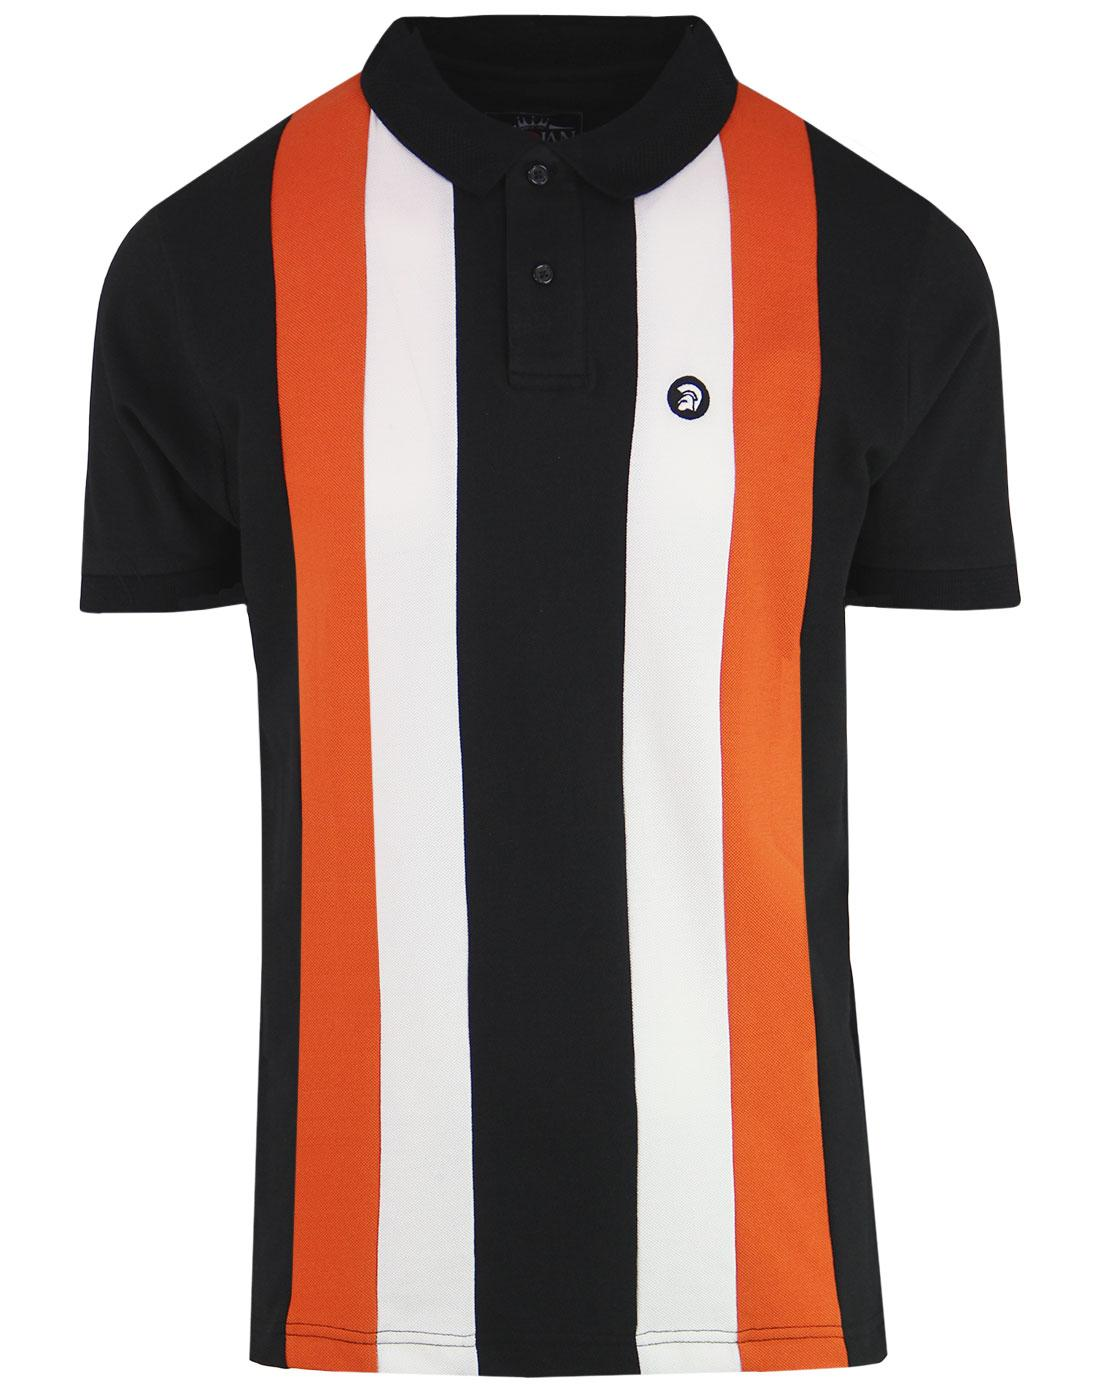 TROJAN RECORDS Mod Stripe Panel Pique Polo Top (B)